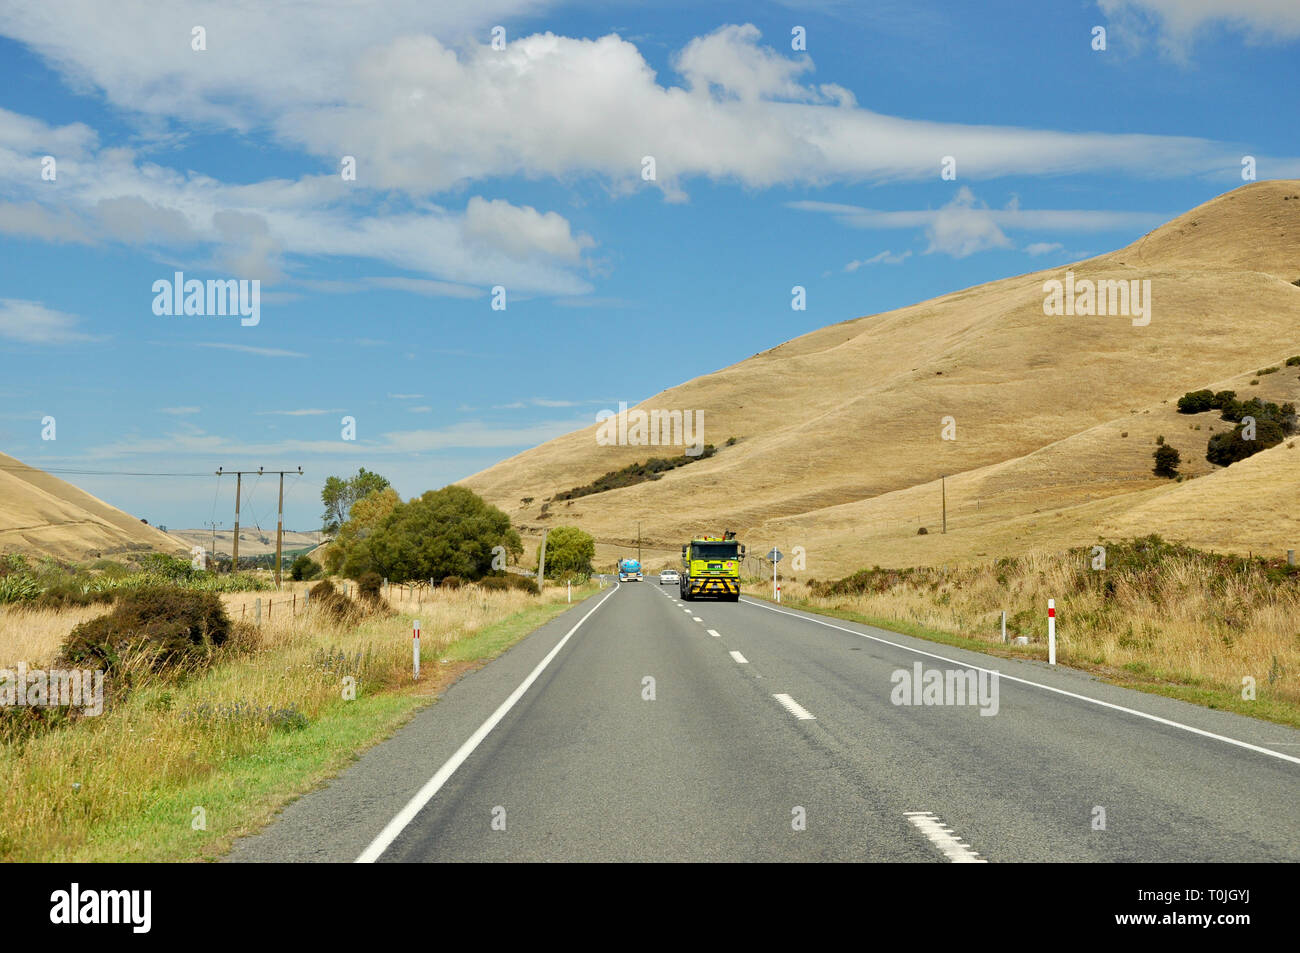 State Highway 1 in the Marlborough region of the South Island of New Zealand. SH1. Road traffic driving through rolling hills countryside in summer - Stock Image